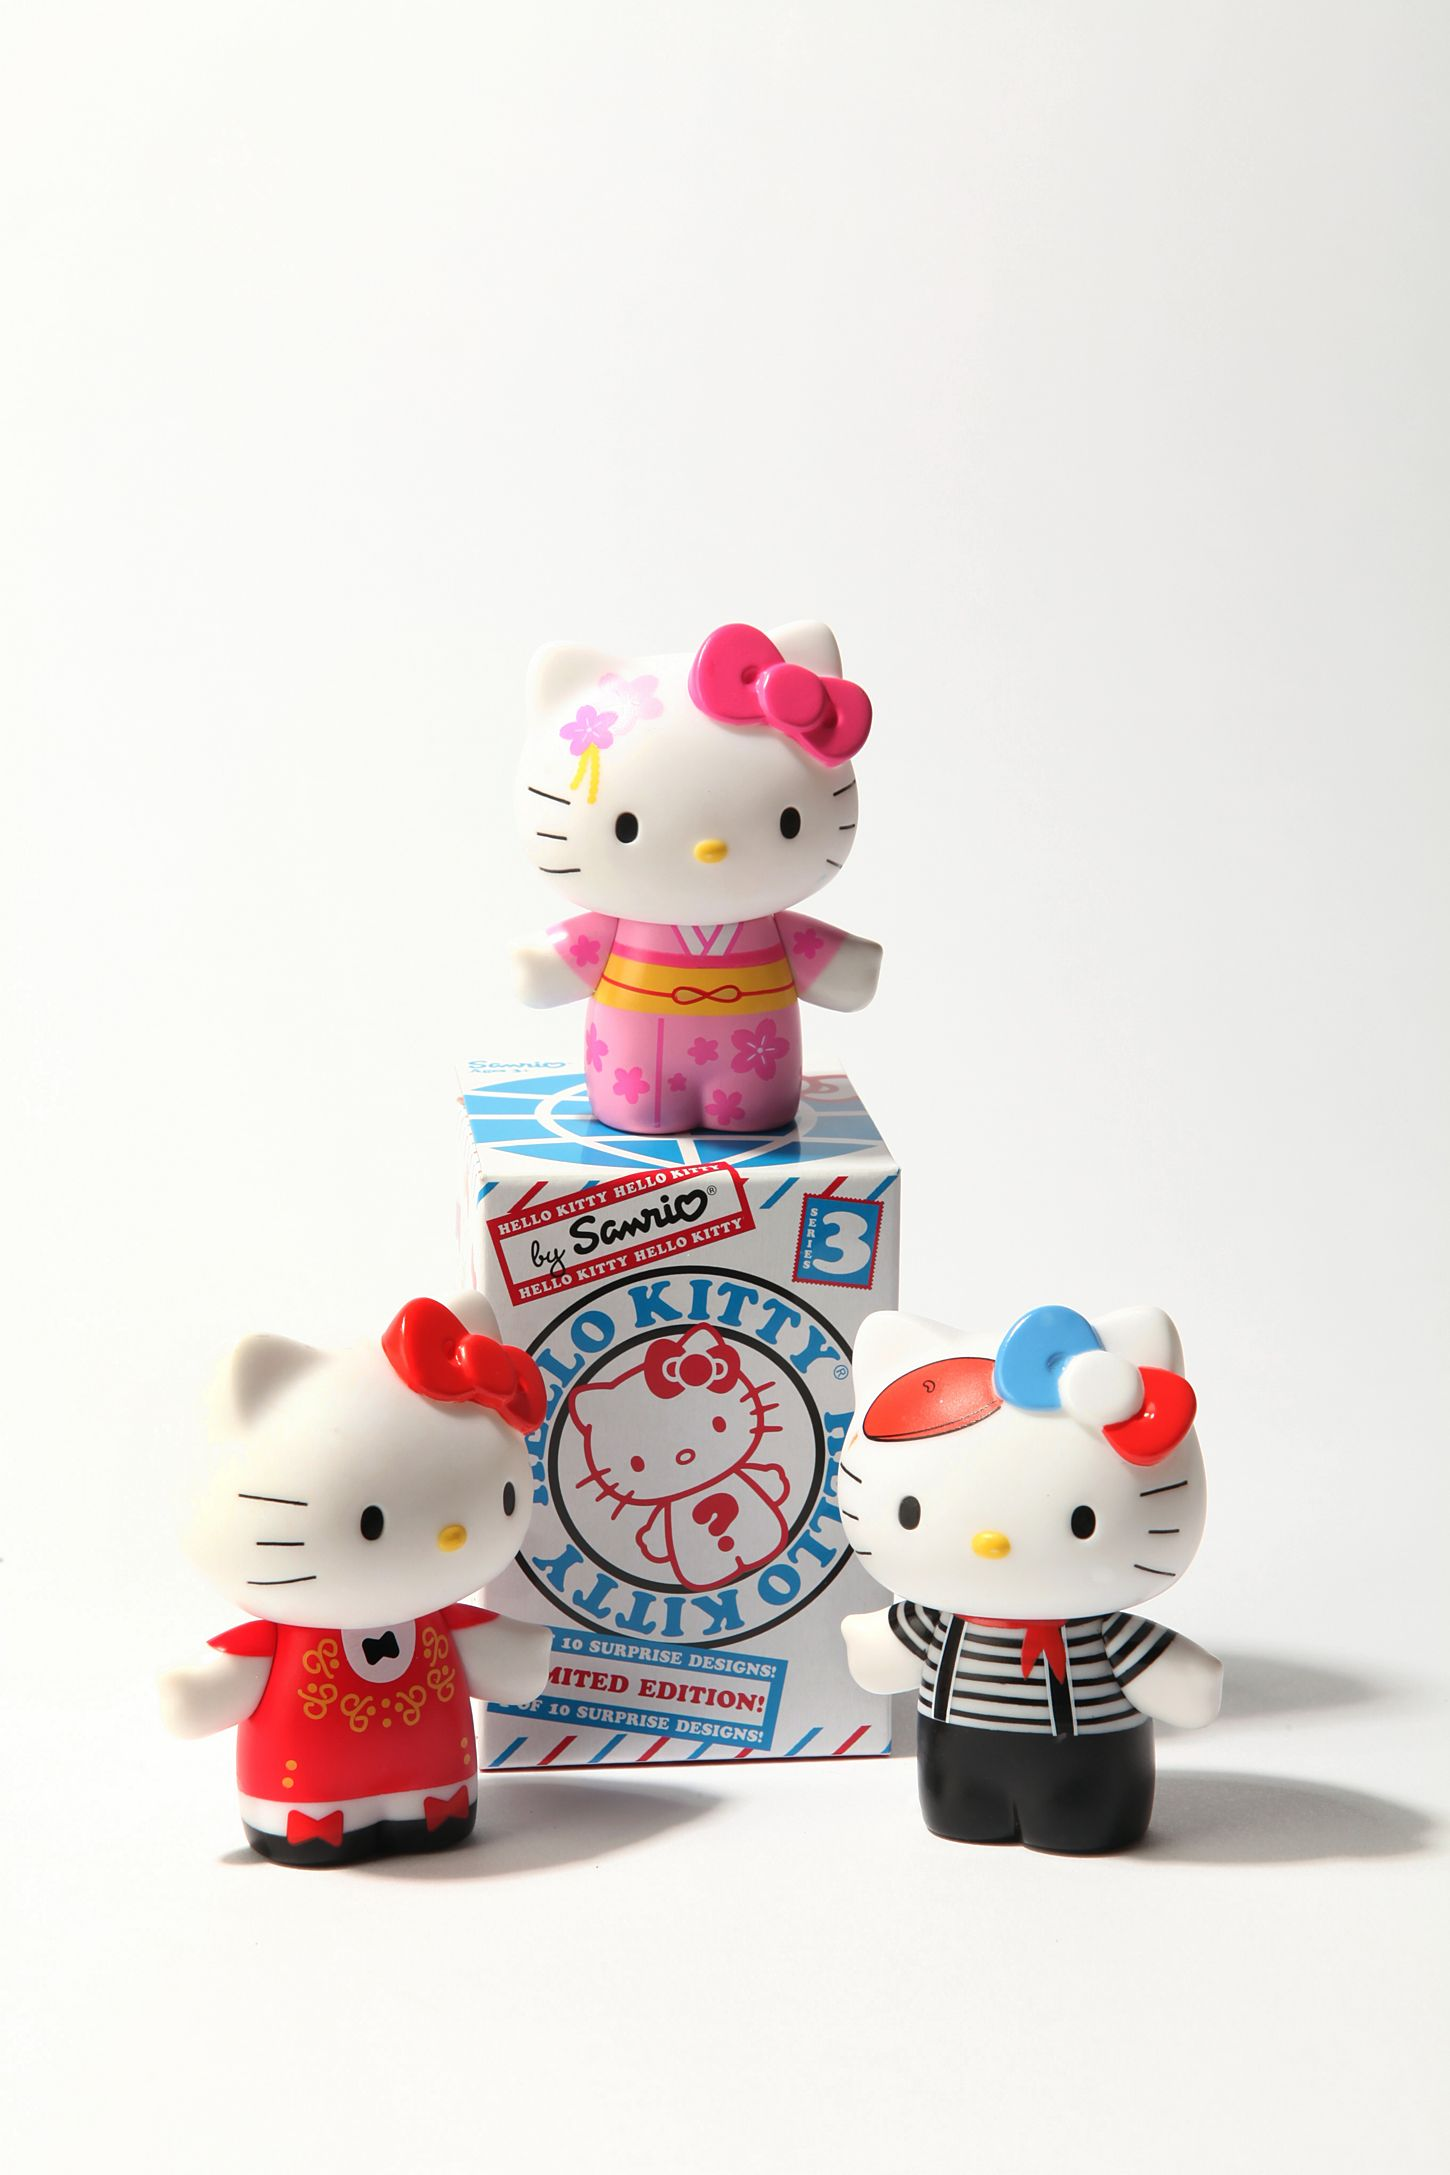 Series 3 Hello Kitty Blindbox Figures Urban Outfitters